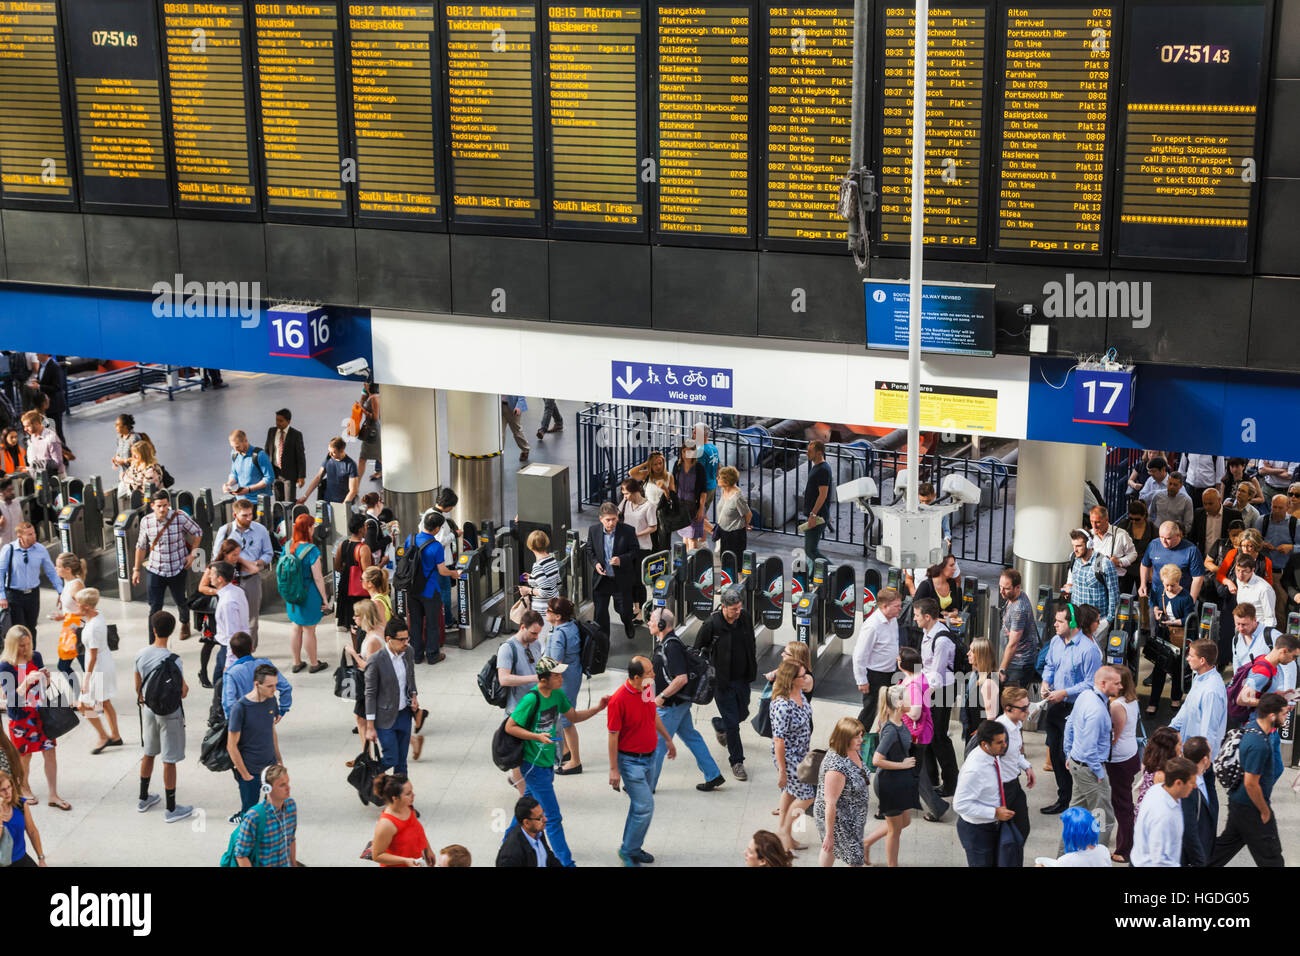 England, London, Waterloo Station, Commuters - Stock Image